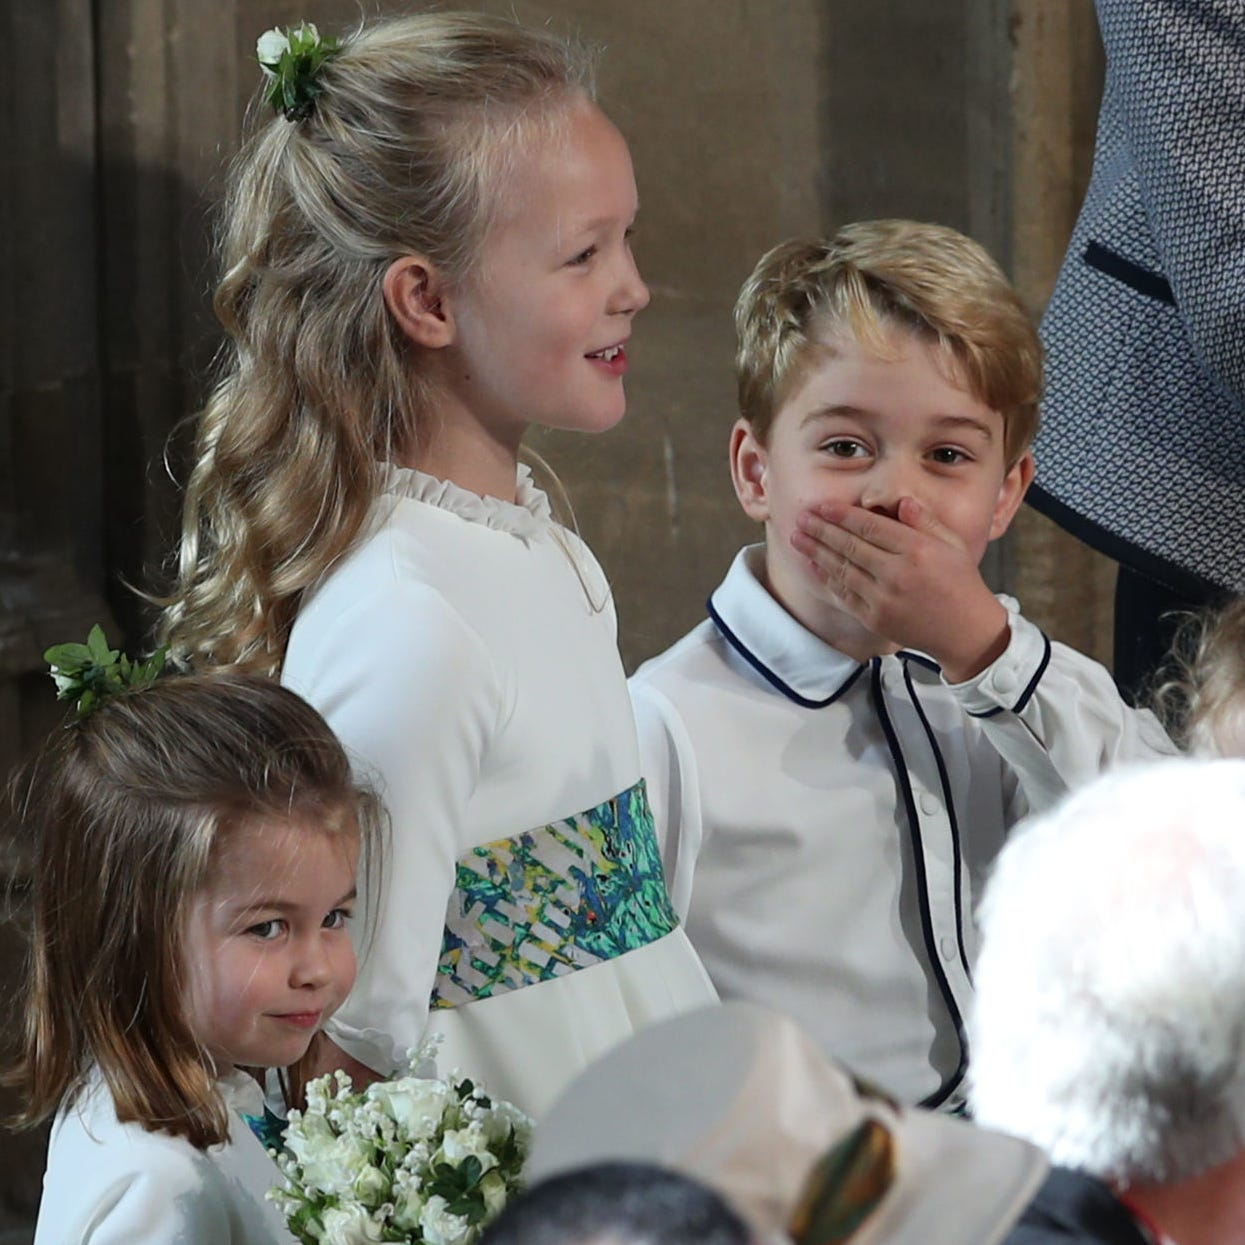 The bridesmaids and page boys at the wedding of Britain's Princess Eugenie and Jack Brooksbank on Oct. 12, 2018.